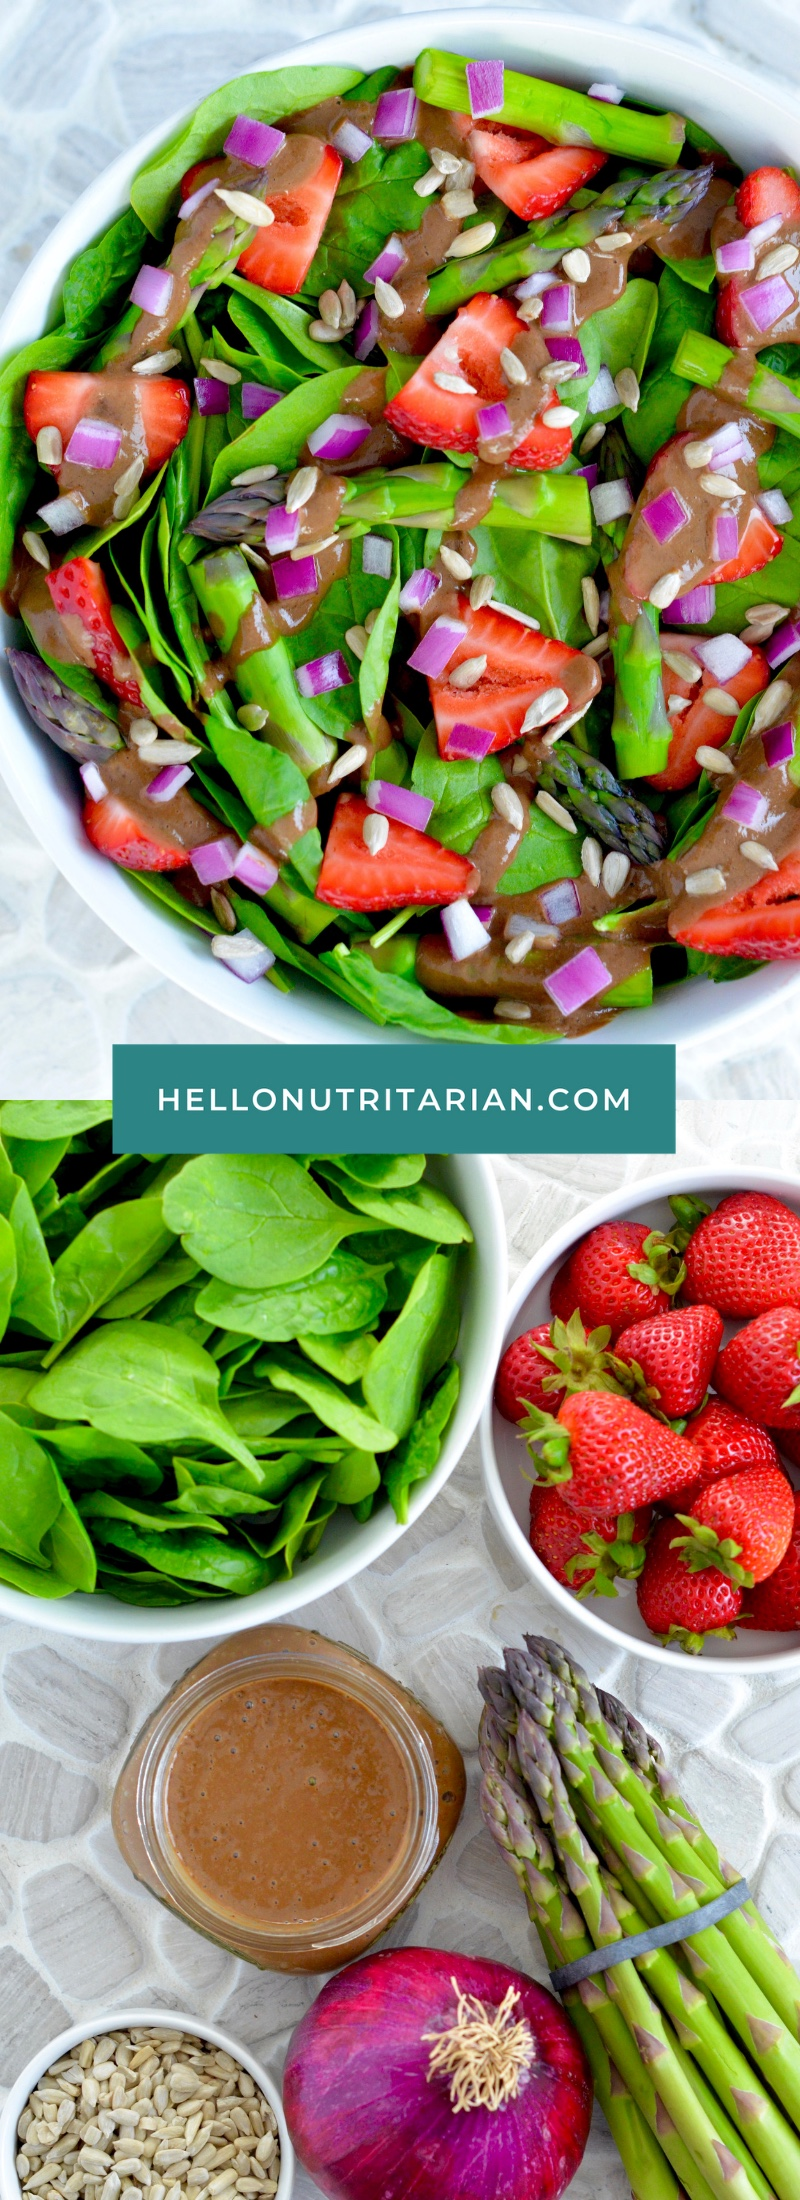 Oil-Free Strawberry Spinach and Asparagus Salad Recipe by Hello Nutritarian Vegan Whole Food Plant Based SOS-Free Vegan Whole30 Dr Fuhrman Eat to Live Daily Chef AJ Dr Greger How Not to Diet